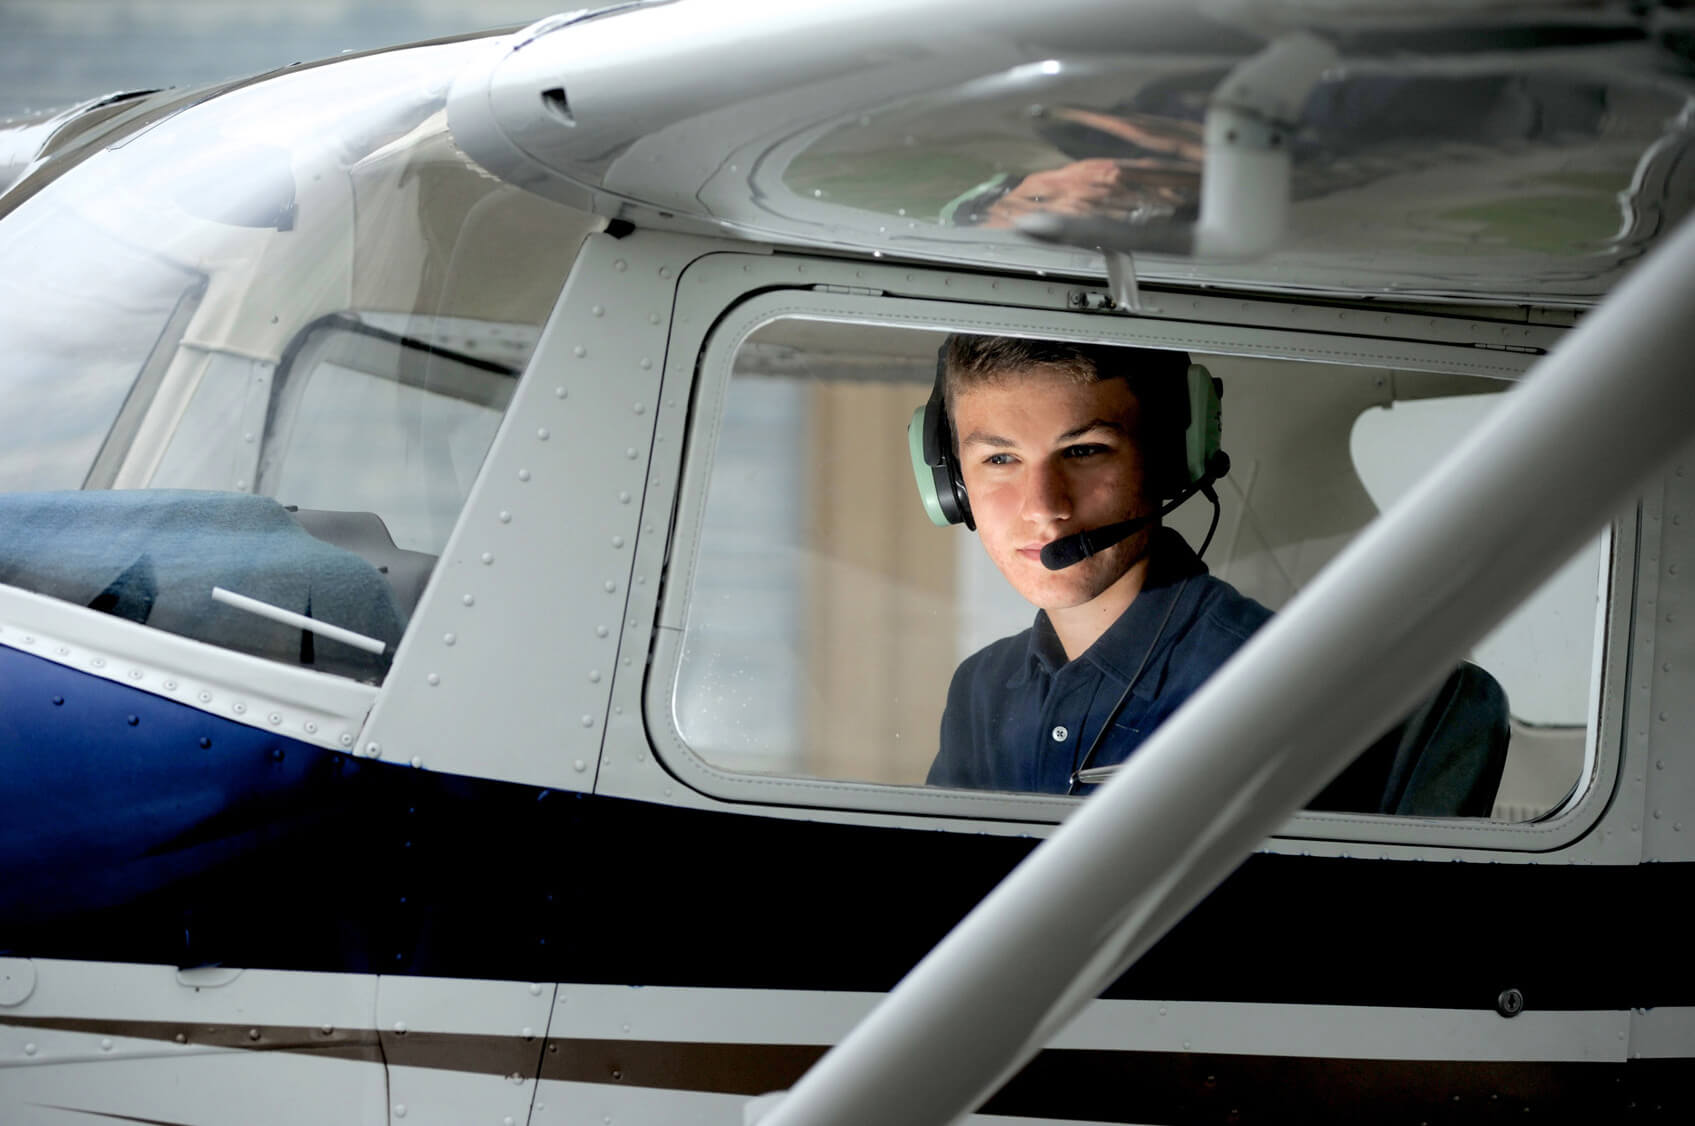 High school seniors have all kinds of talents and interests, like this Troy, Michigan senior who wanted to showcase his aviation skills.